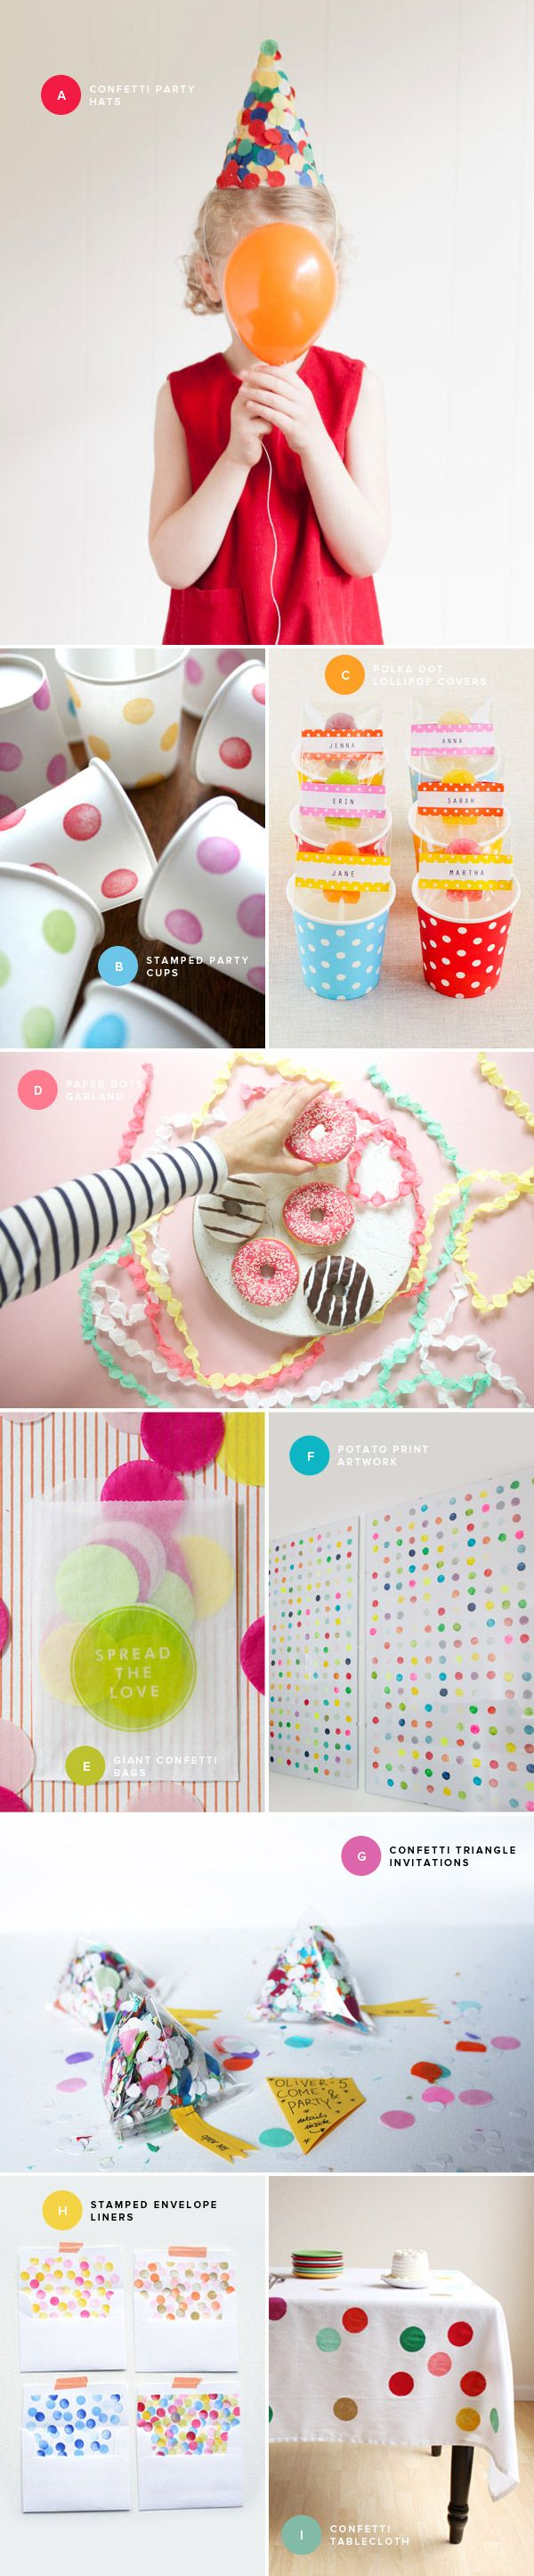 Polka dot party http://ohhappyday.com/2014/02/polka-dot-party-ideas/